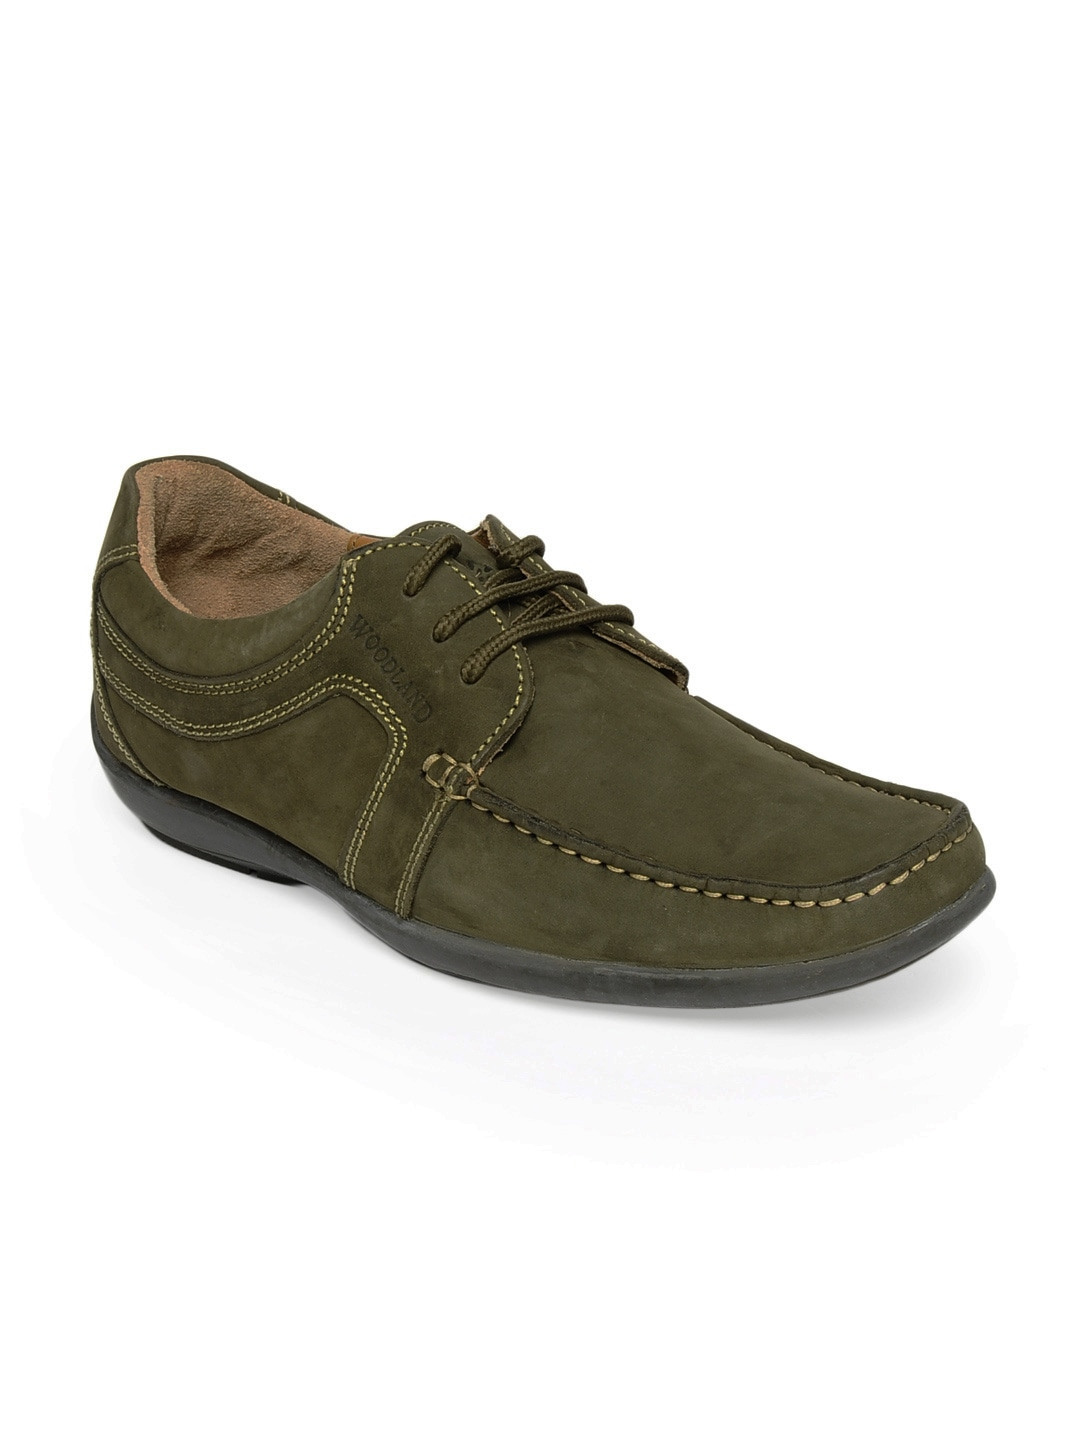 buy woodland olive green shoes 288 footwear for